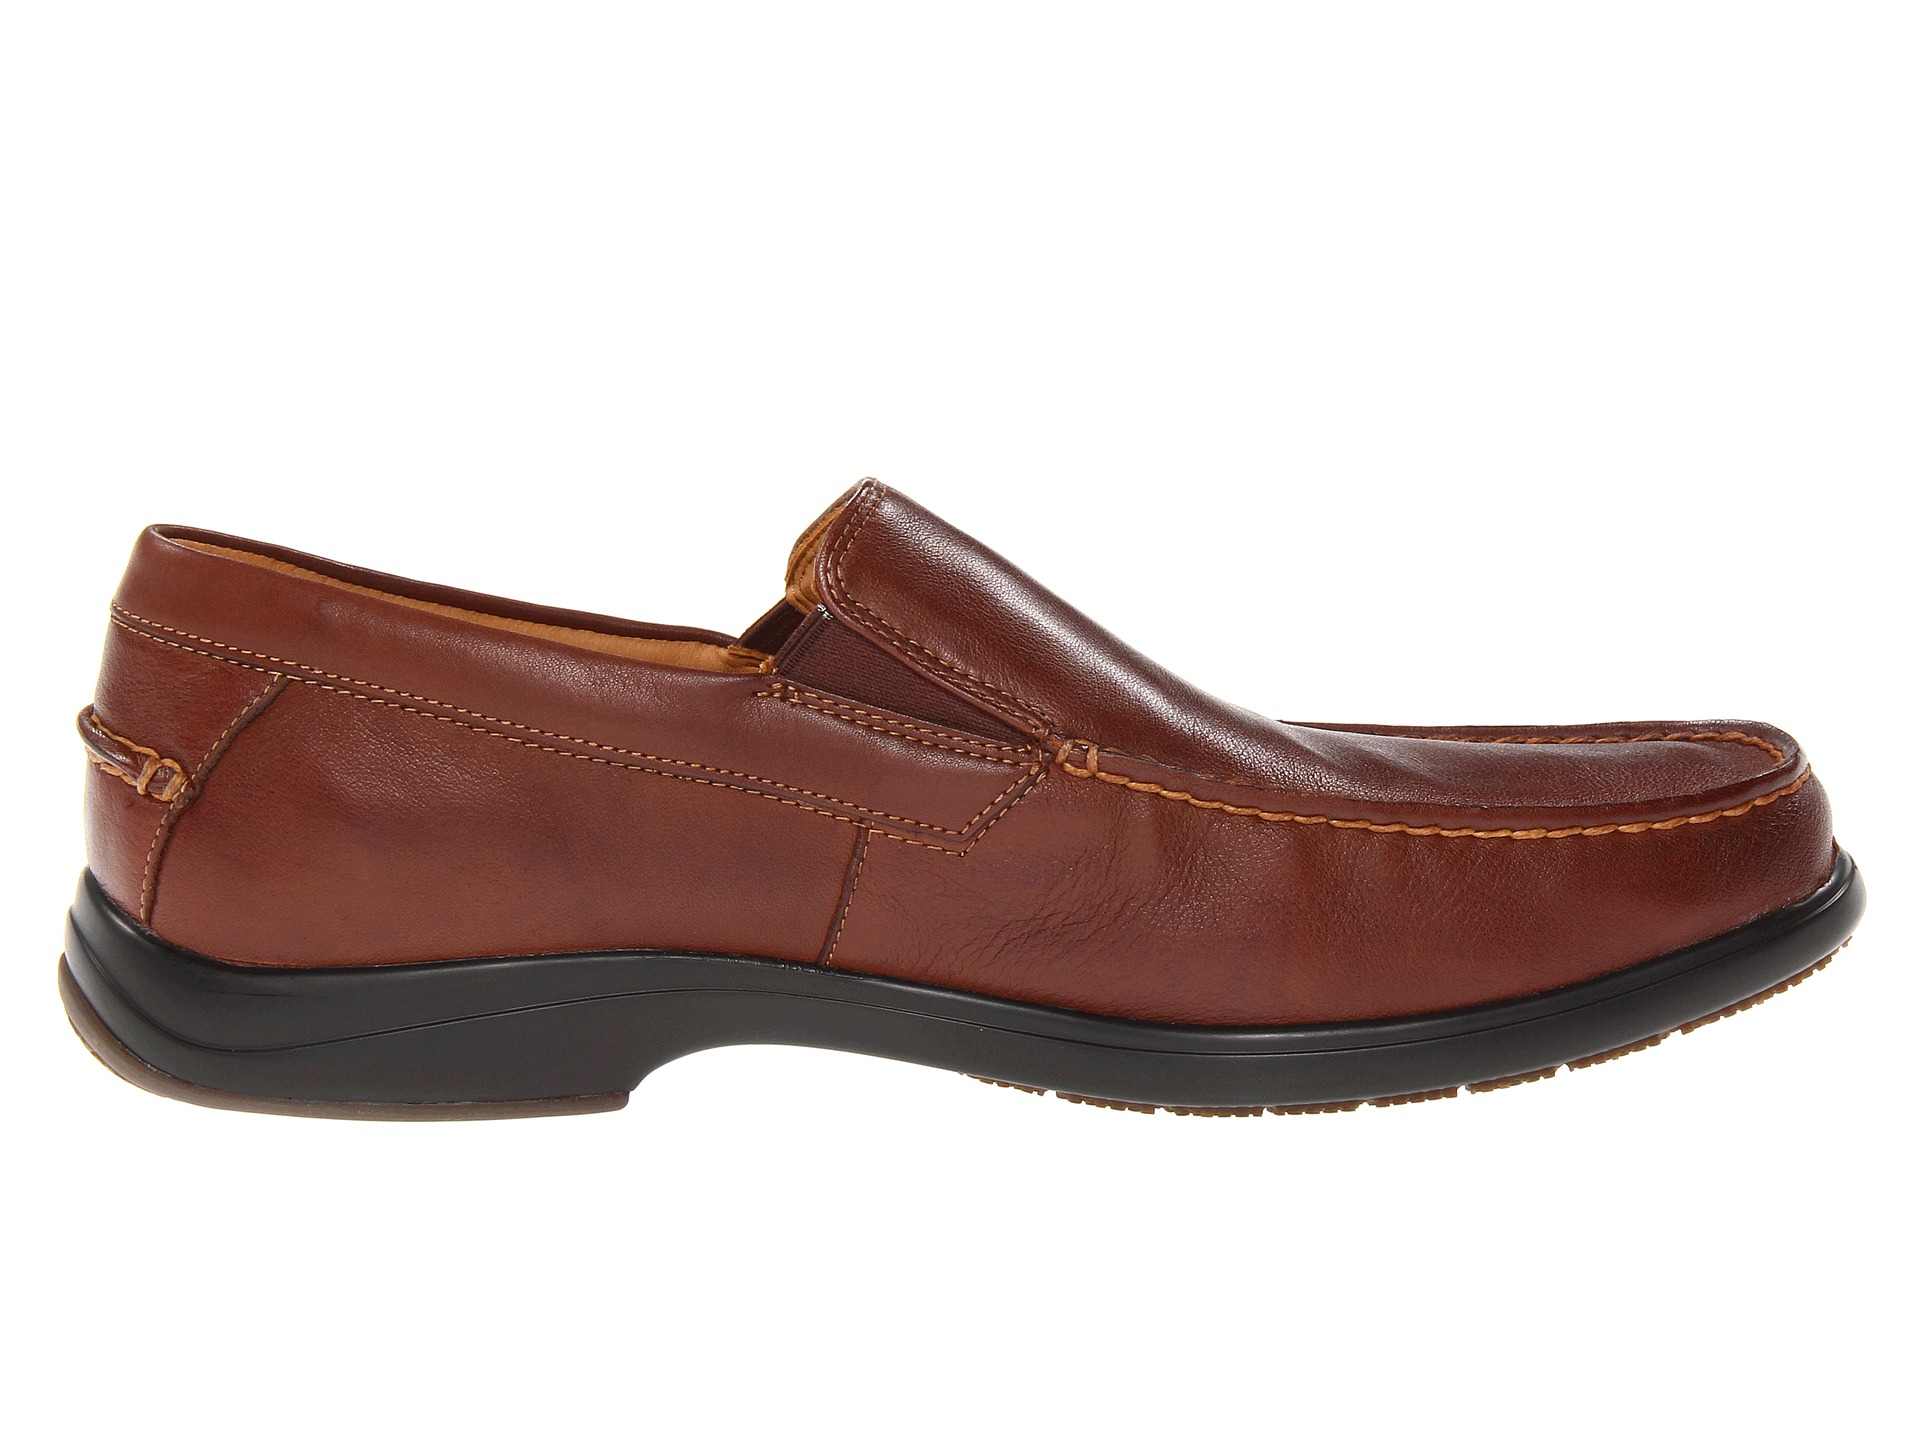 90f7a3d6c3e Lyst - Sperry Top-Sider Gold Cup Asv Boothbay Venetian Loafer in ...